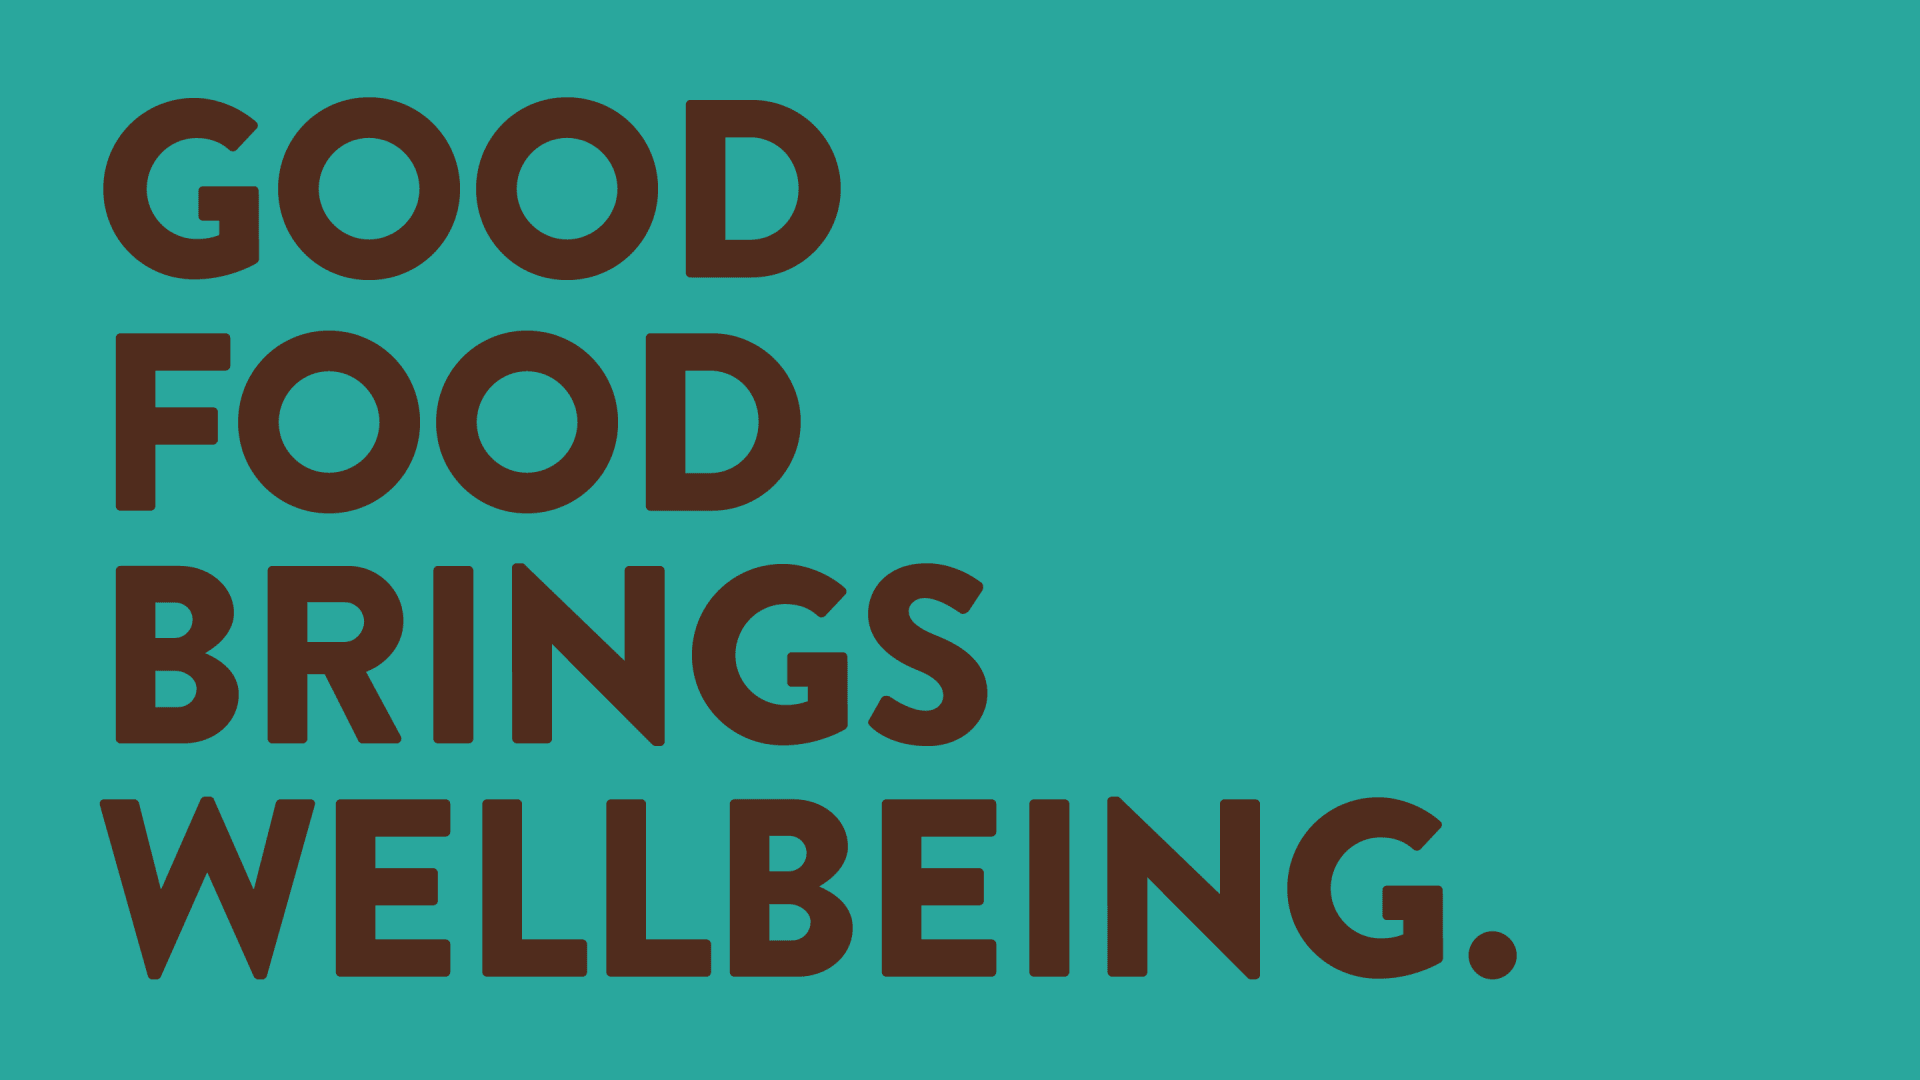 Cauldron brand messaging – good food brings wellbeing